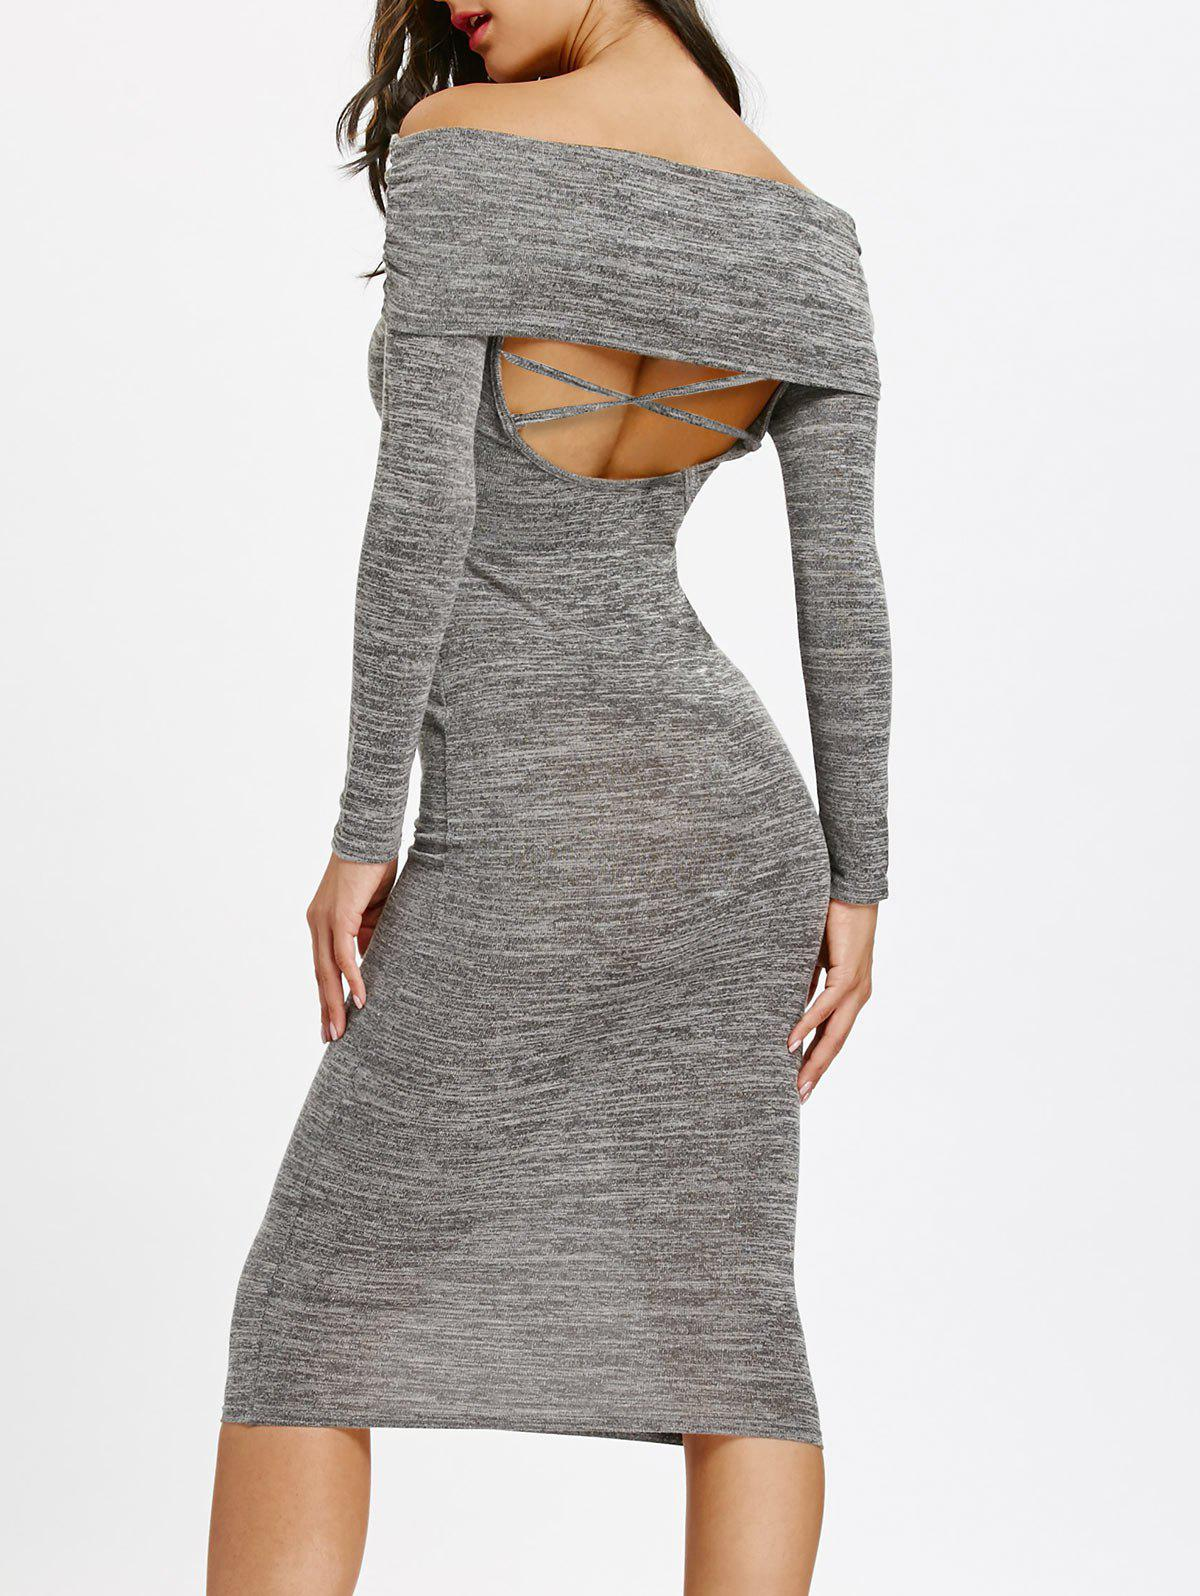 Cut Out Back Off Shoulder Midi Bodycon DressWOMEN<br><br>Size: XL; Color: GRAY; Style: Brief; Material: Polyester,Spandex; Silhouette: Bodycon; Dresses Length: Mid-Calf; Neckline: Off The Shoulder; Sleeve Length: Long Sleeves; Waist: Natural; Embellishment: Criss-Cross,Cut Out; Pattern Type: Solid Color; Elasticity: Elastic; With Belt: No; Season: Fall,Spring,Winter; Weight: 0.4000kg; Package Contents: 1 x Dress;